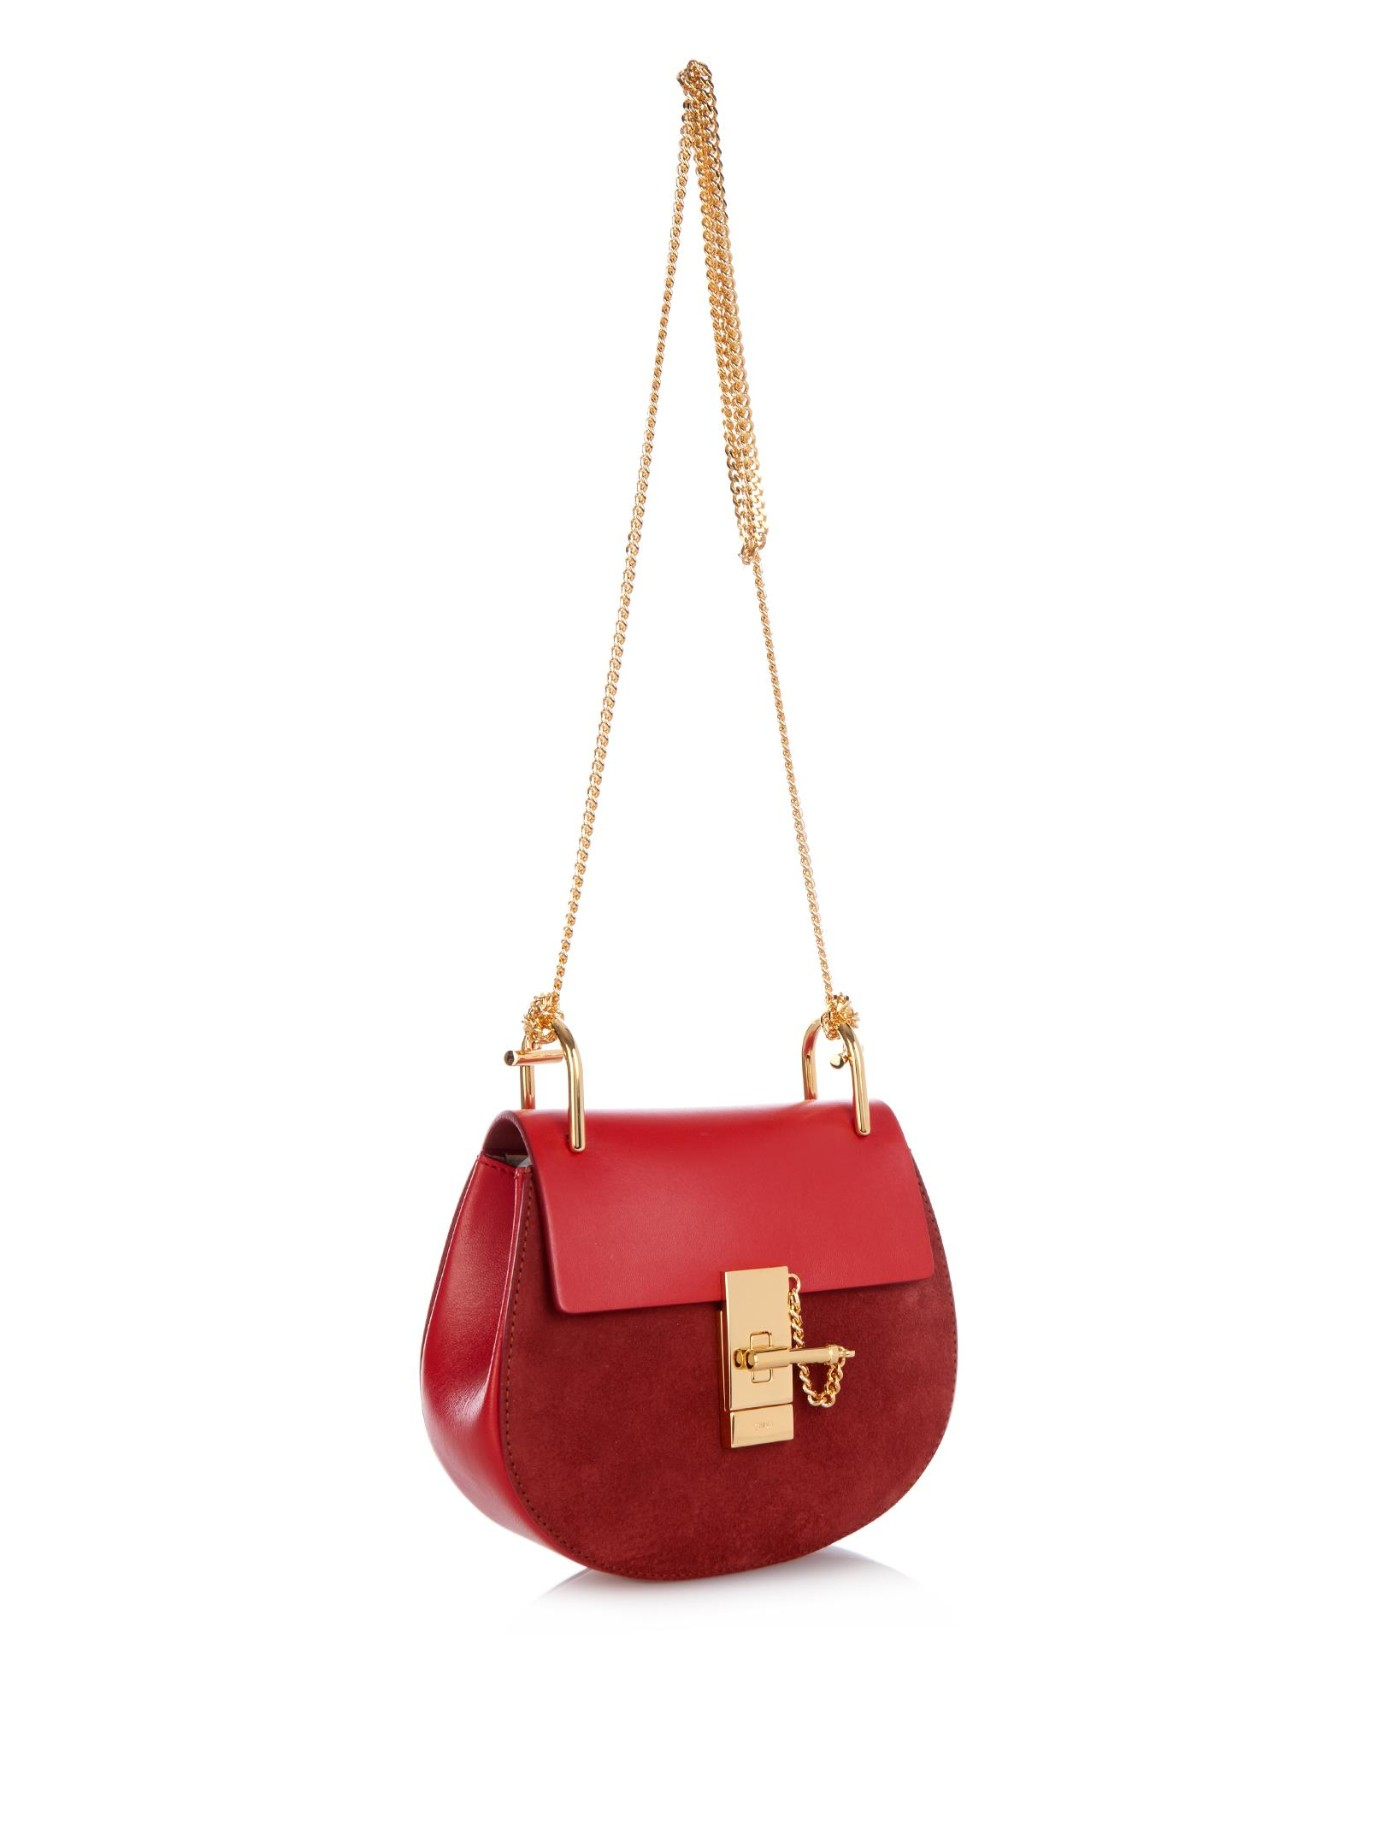 blue chloe handbag - Chlo�� Drew Cross-Body Bag in Red | Lyst